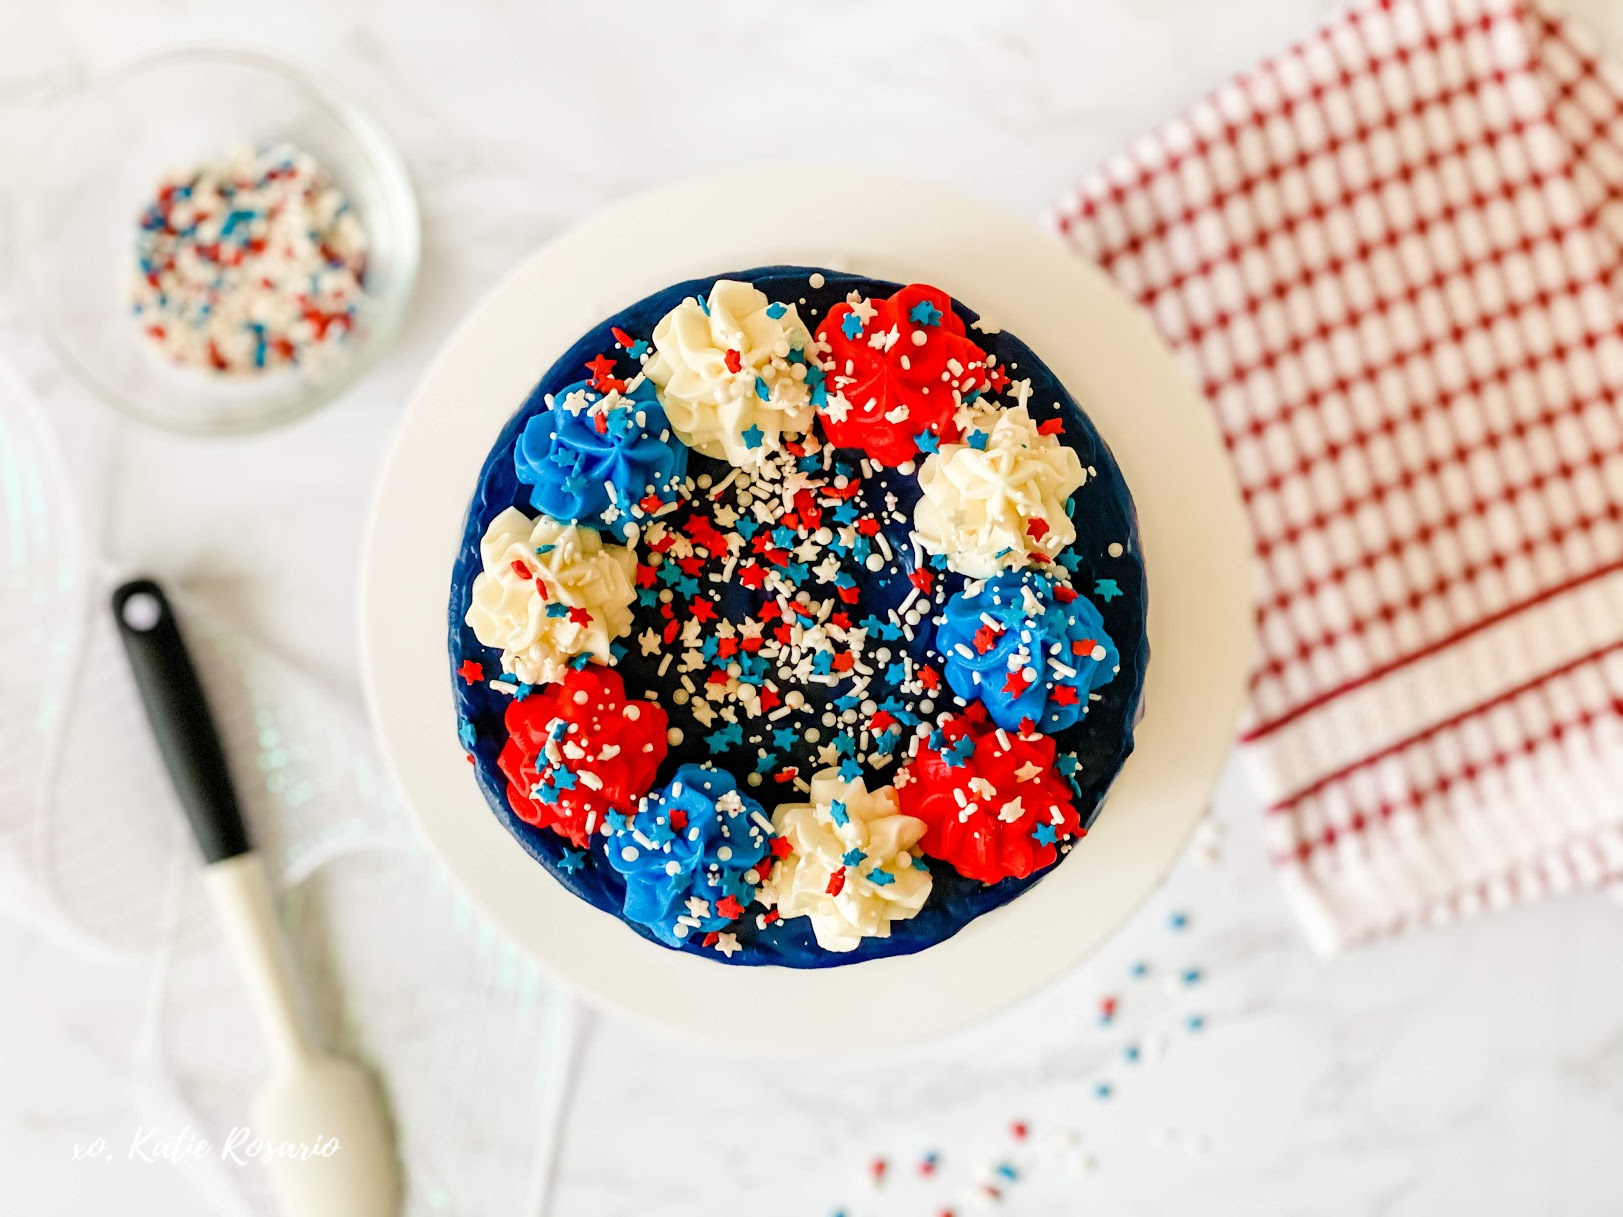 Learn how to make a patriotic cake for the Fourth of July? This Red, White & Blue Drip Cake is perfect for the Fourth of July. It's bright and patriotic while tasting delicious! This Red, White & Blue Drip Cake is made with fluffy vanilla cake layers, filled with patriotic vanilla buttercream and chocolate ganache dripping down the sides of the cake. #xokatierosario #PatrioticCake #dripcake #4thofjulycake #cakedecoratingtips